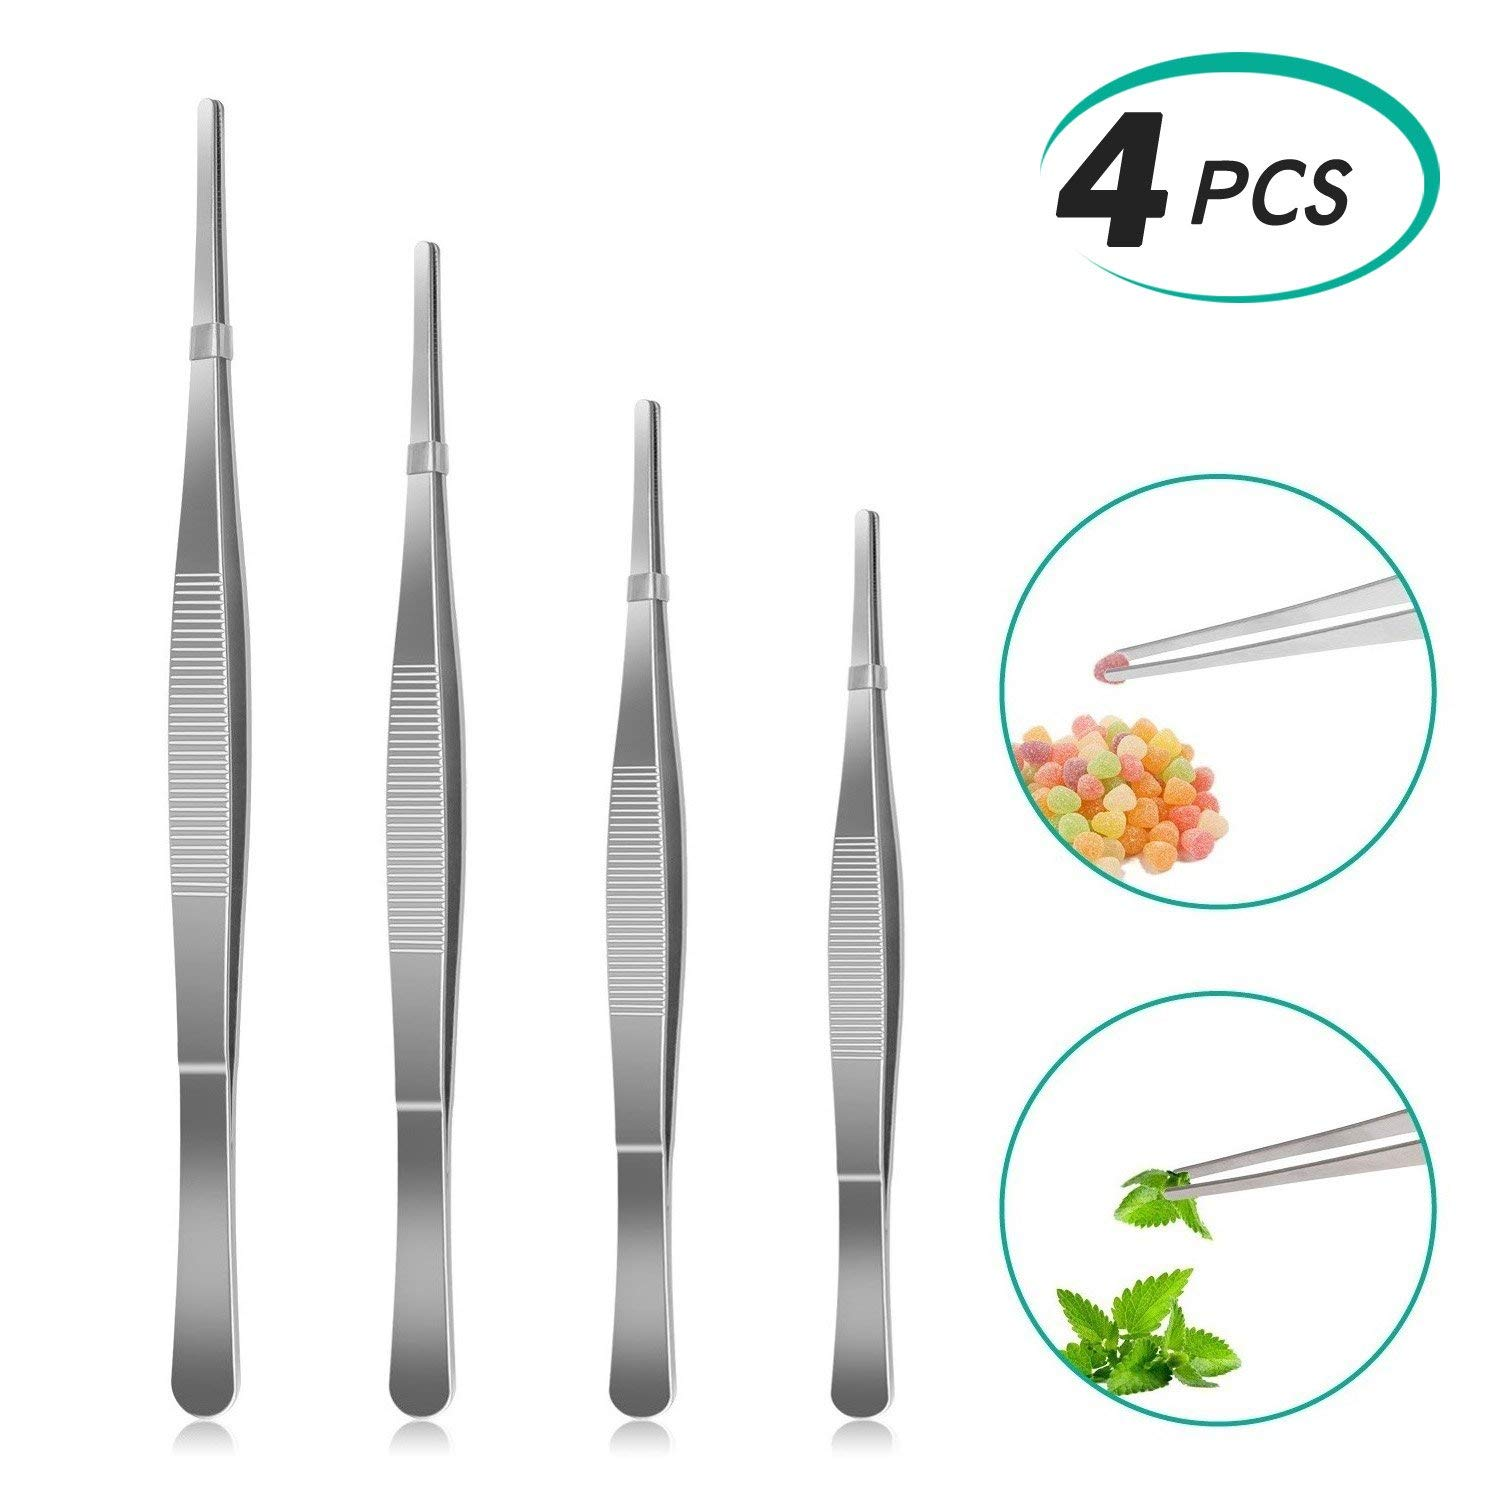 Alcoon 4 Pieces Stainless Steel Tweezers Set Long Straight Tweezers Plant Grass Garden Tweezers with Serrated Tips for Electronic, Nail Art, Jewelry Picking Tool 6.3/7.9/9.8/11.8 Inch Long